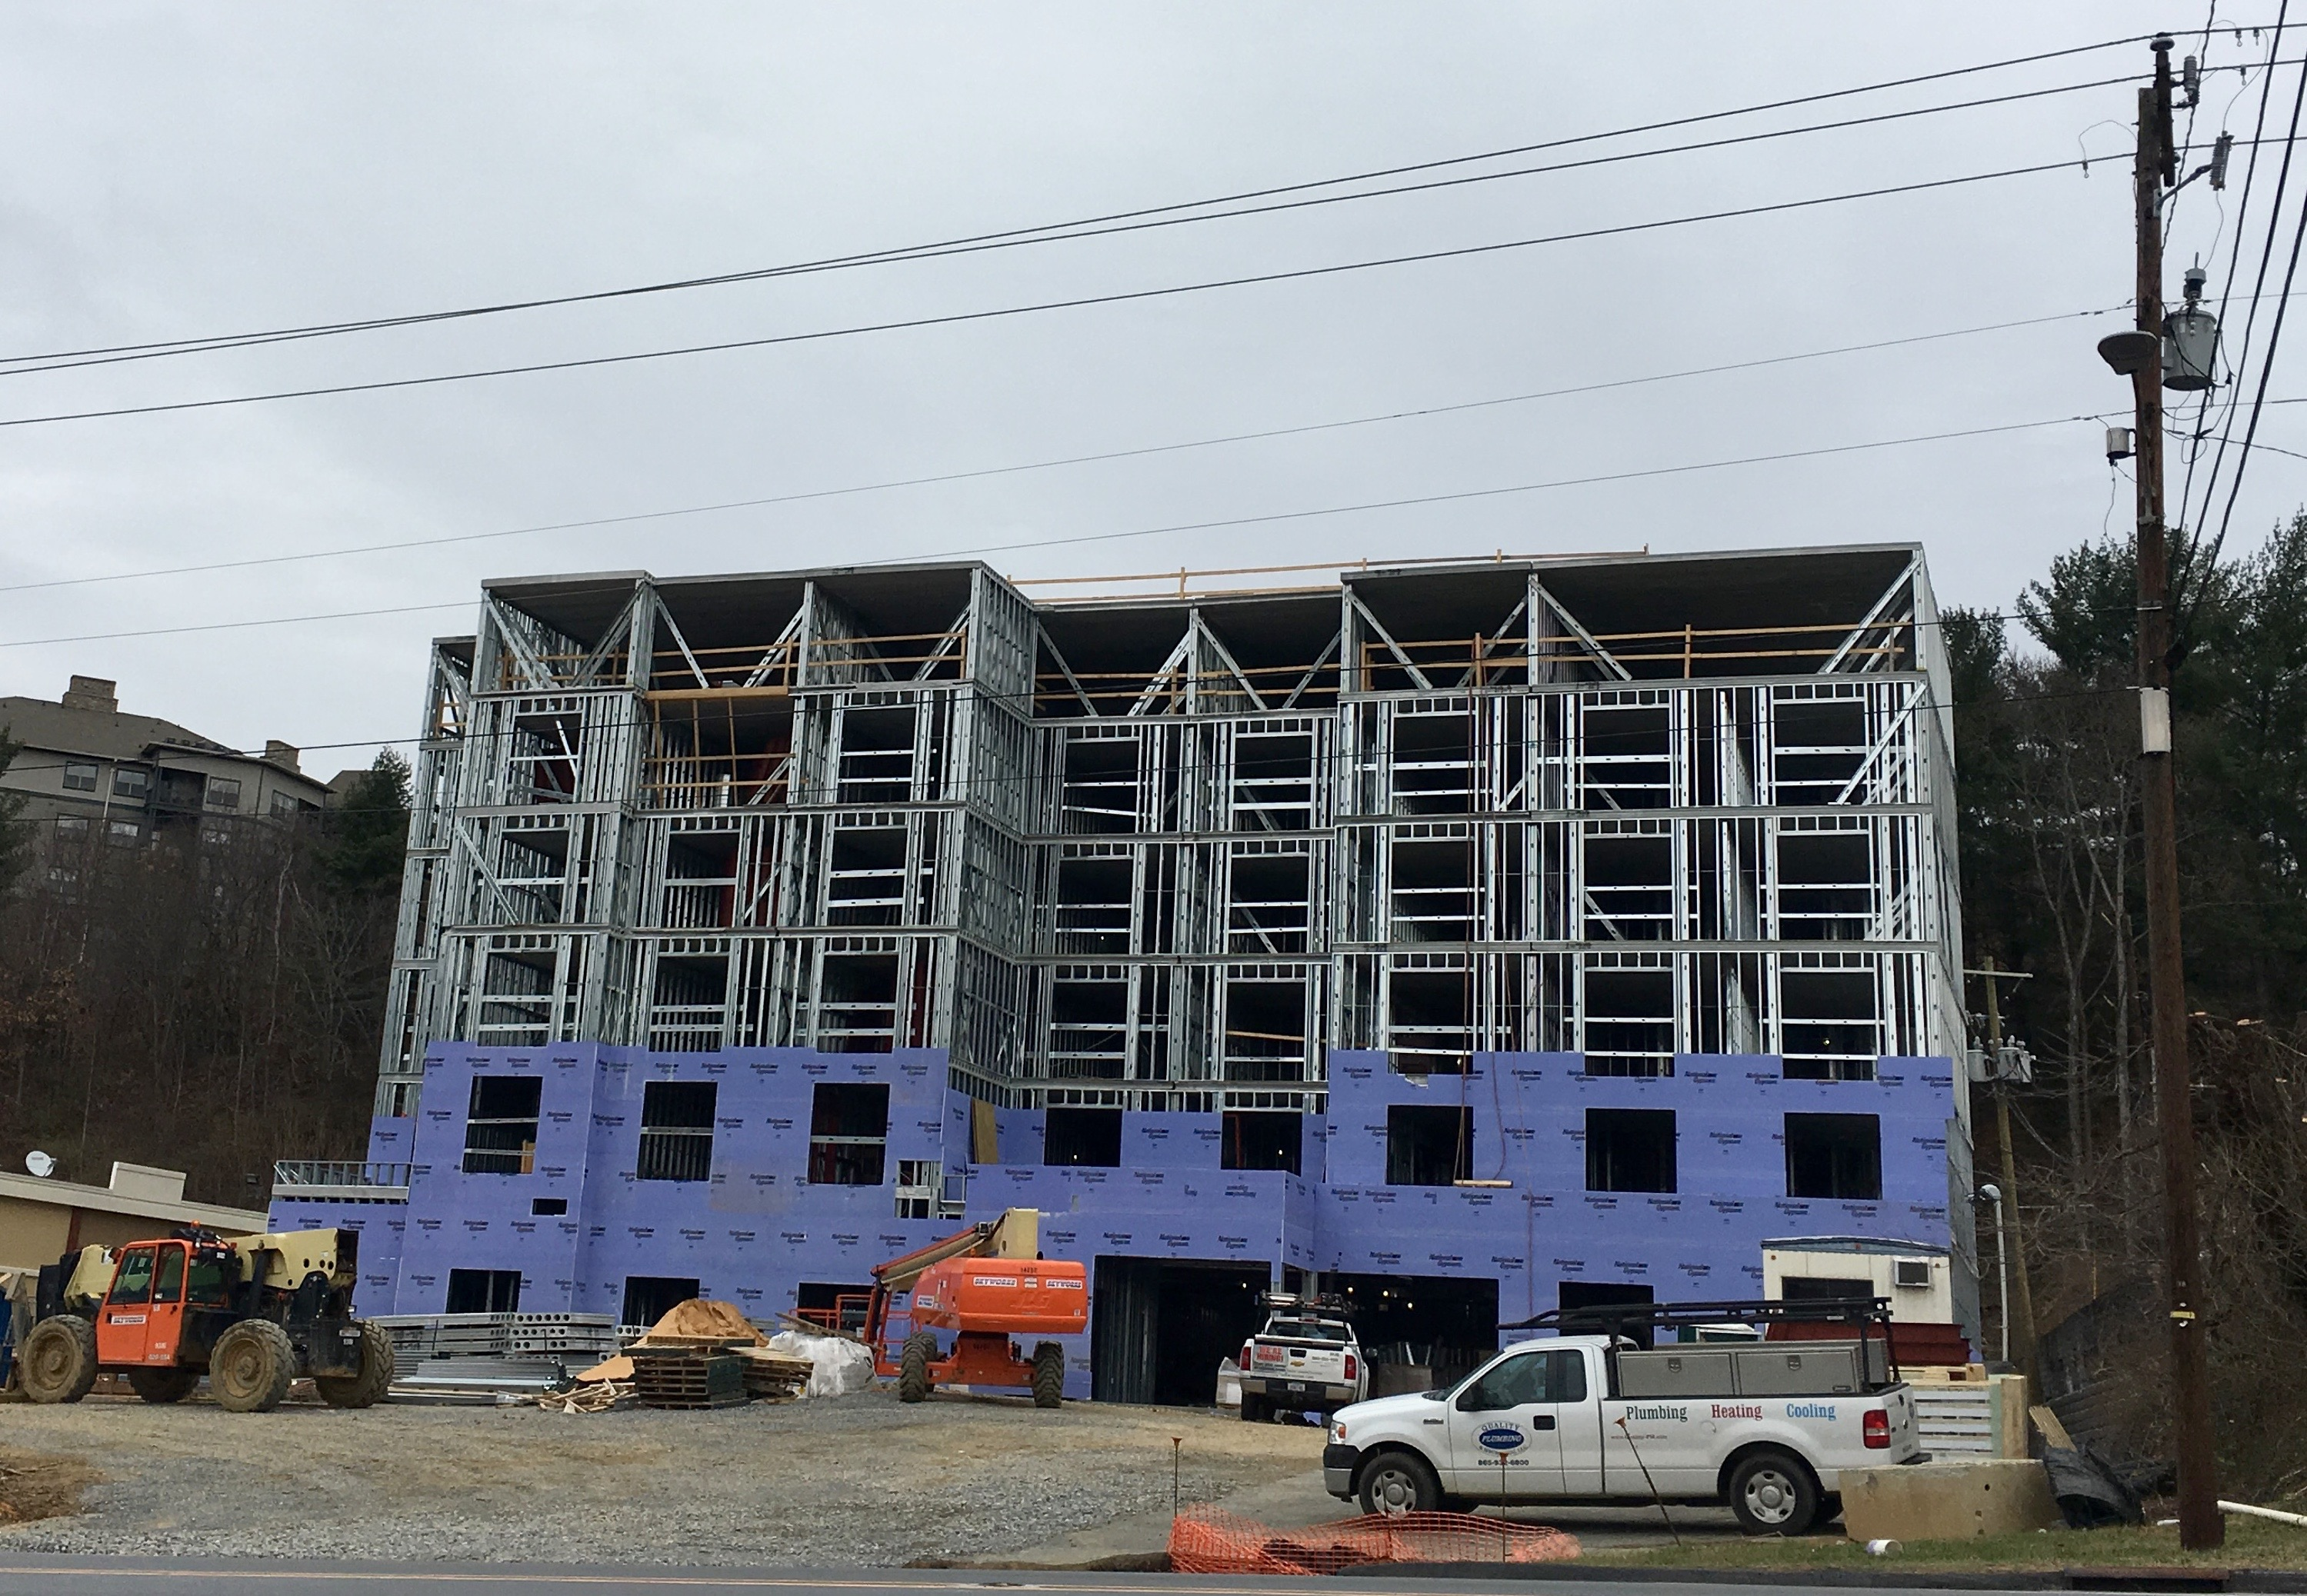 Asheville P&Z votes down new rules aimed at curbing hotel construction boom